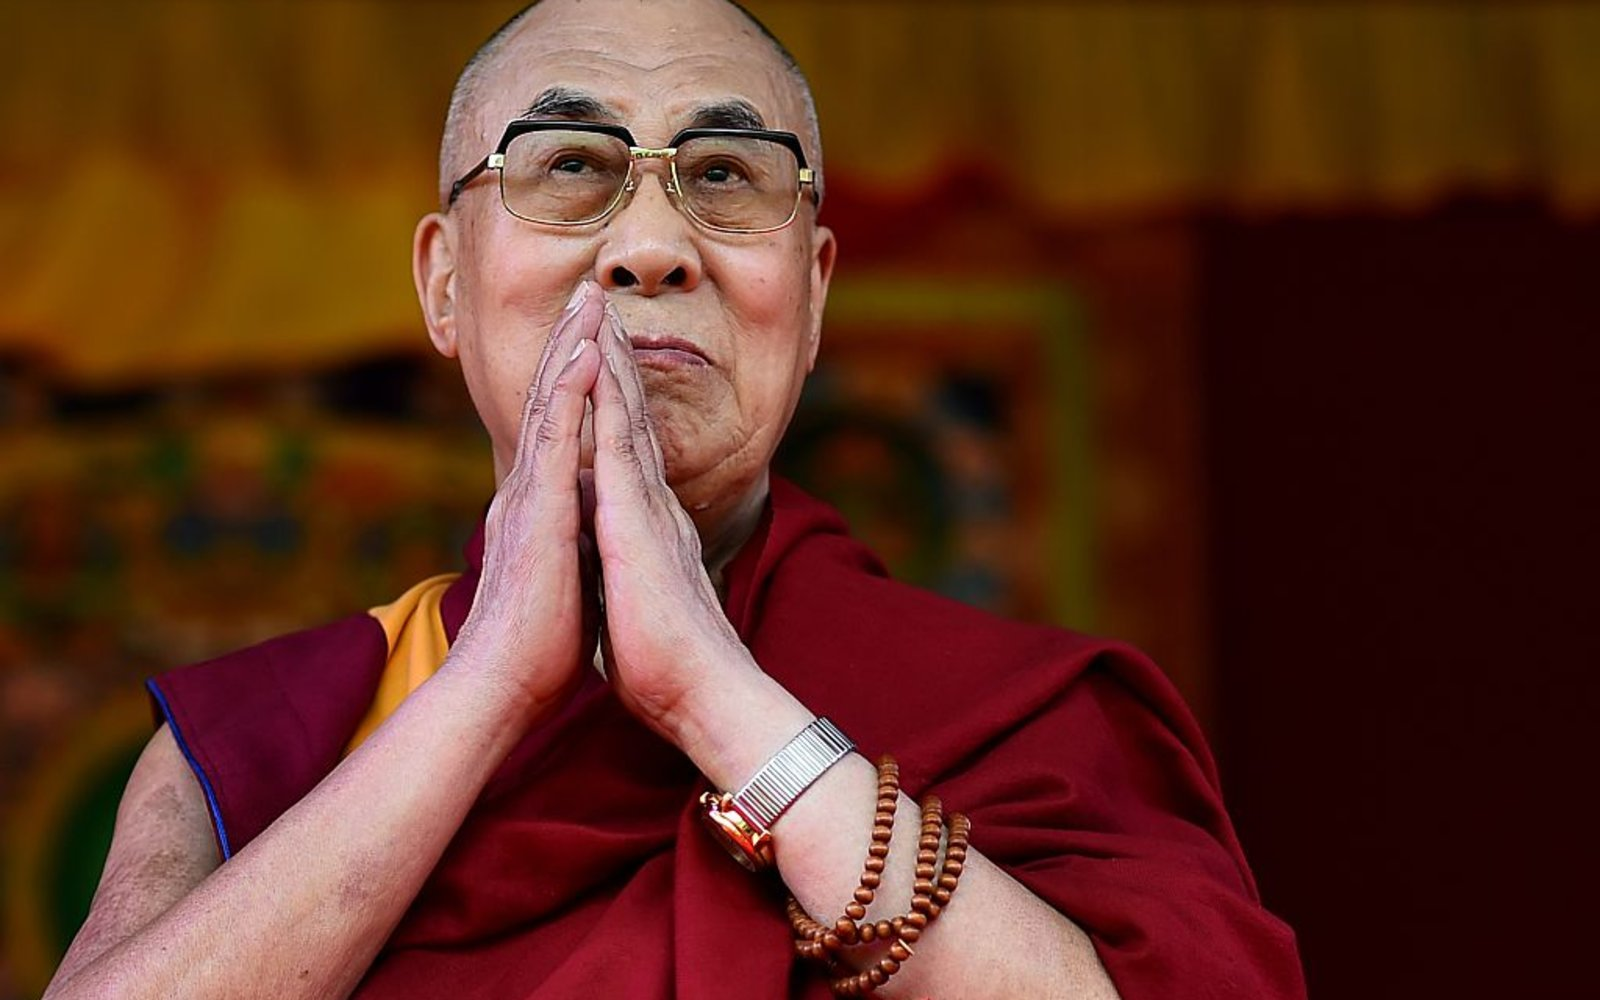 Inspiring Dalai Lama Quotes That Will Change The Way You See The